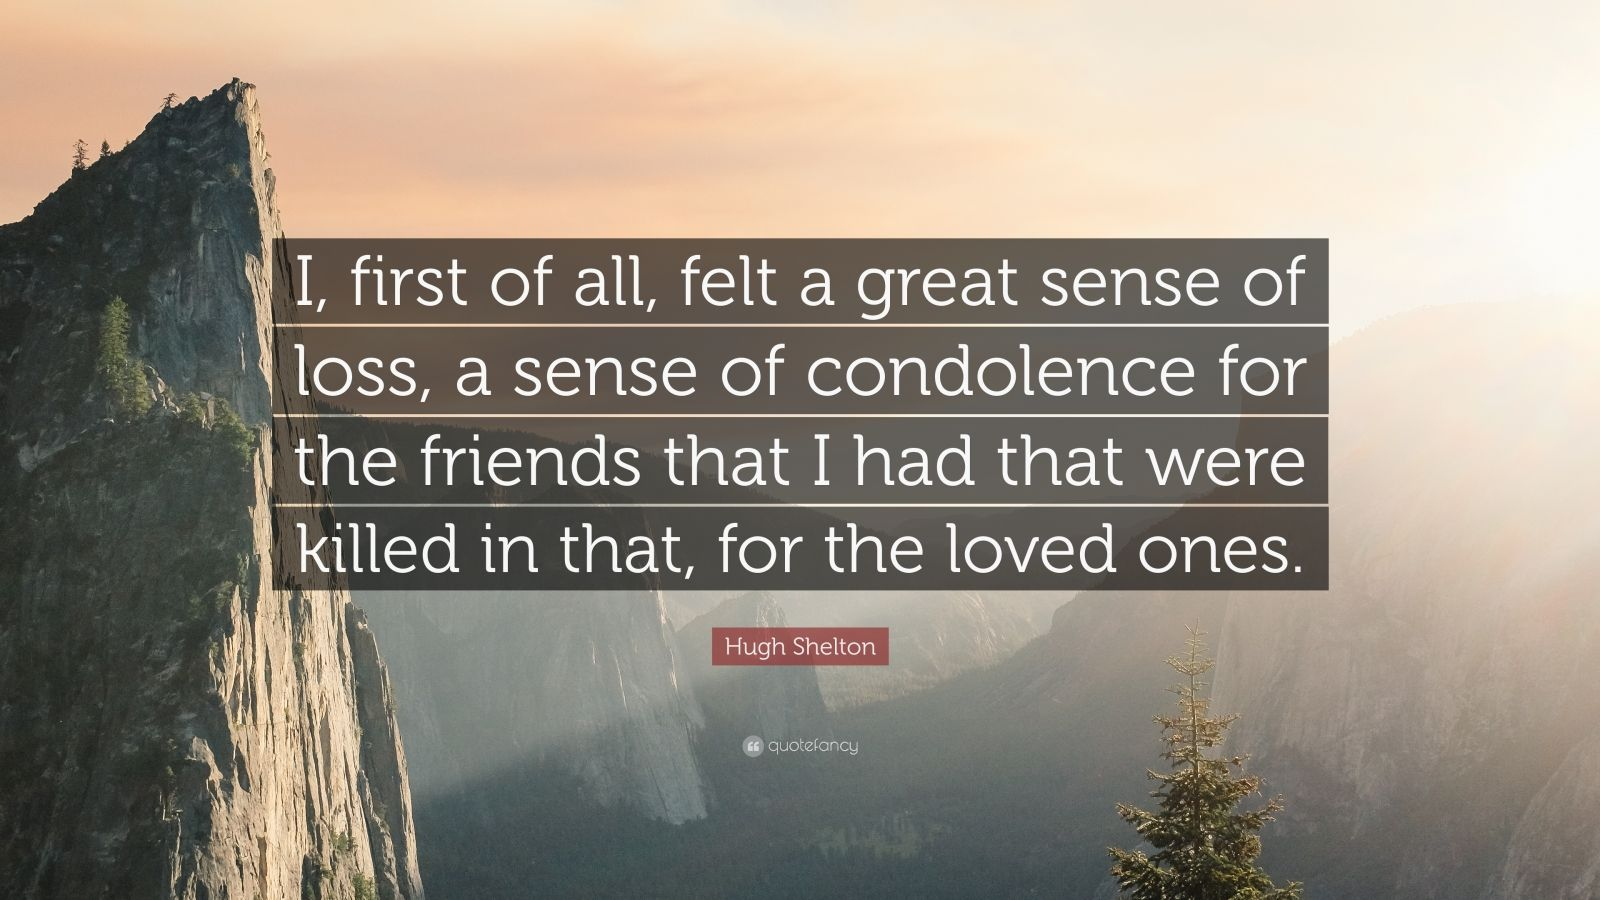 Hugh shelton quote i first of all felt a great sense of loss a hugh shelton quote i first of all felt a great sense of altavistaventures Images